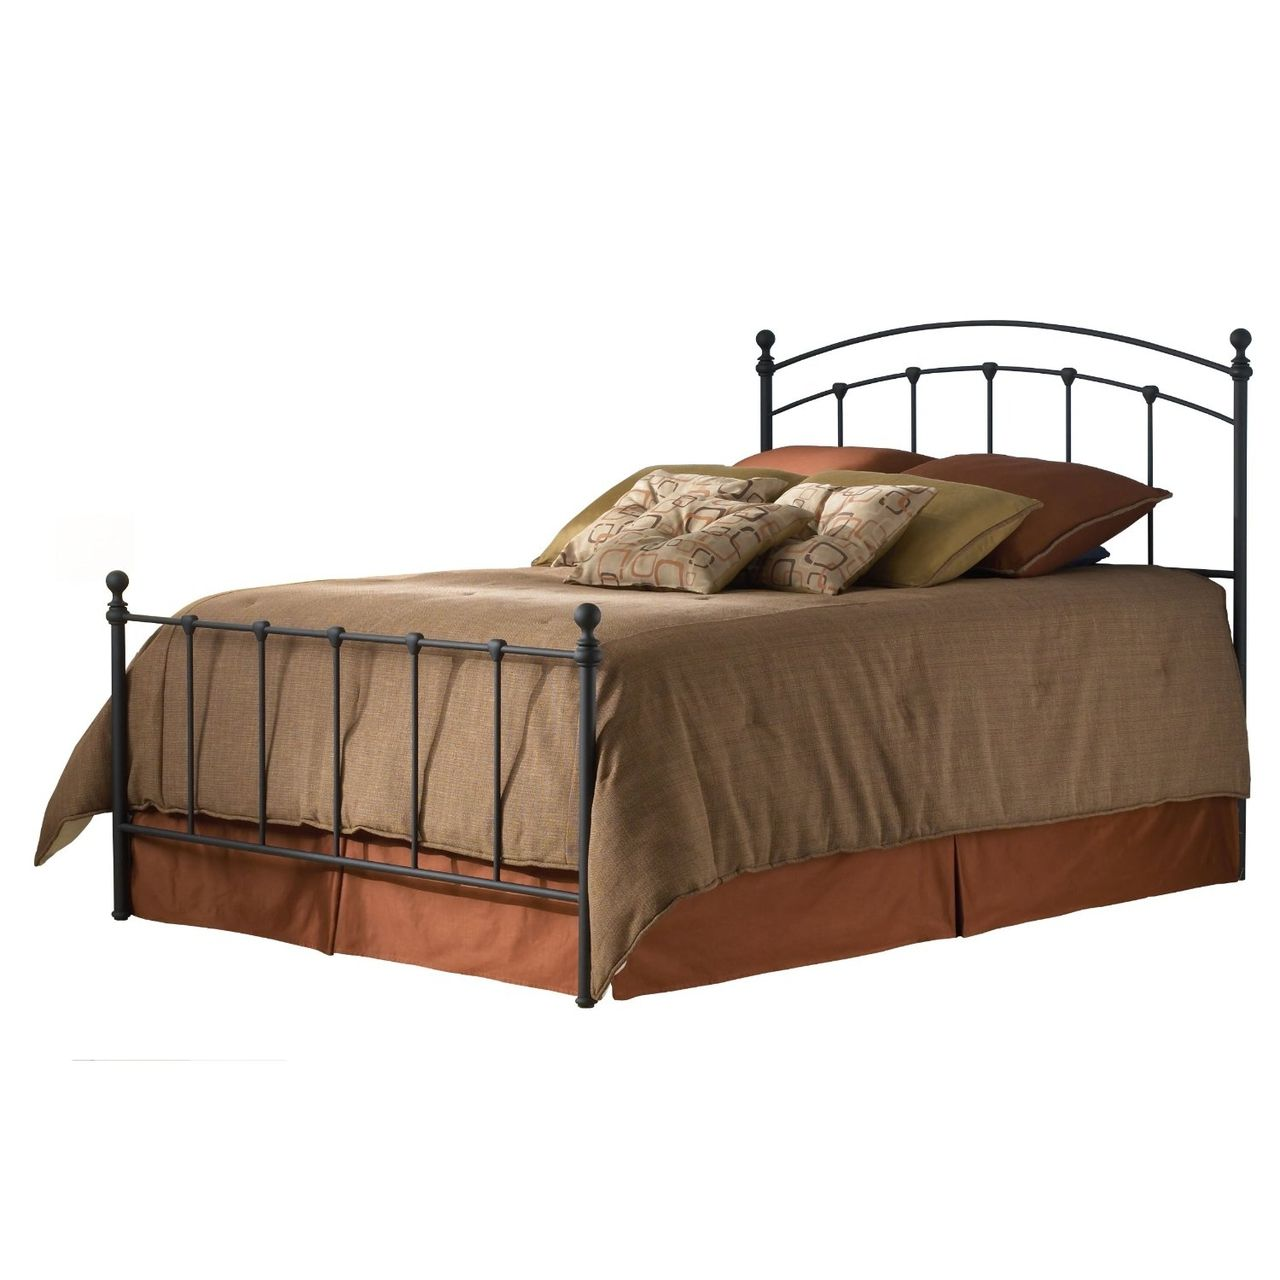 twin size metal bed frame with headboard and footboard in matte black quality house